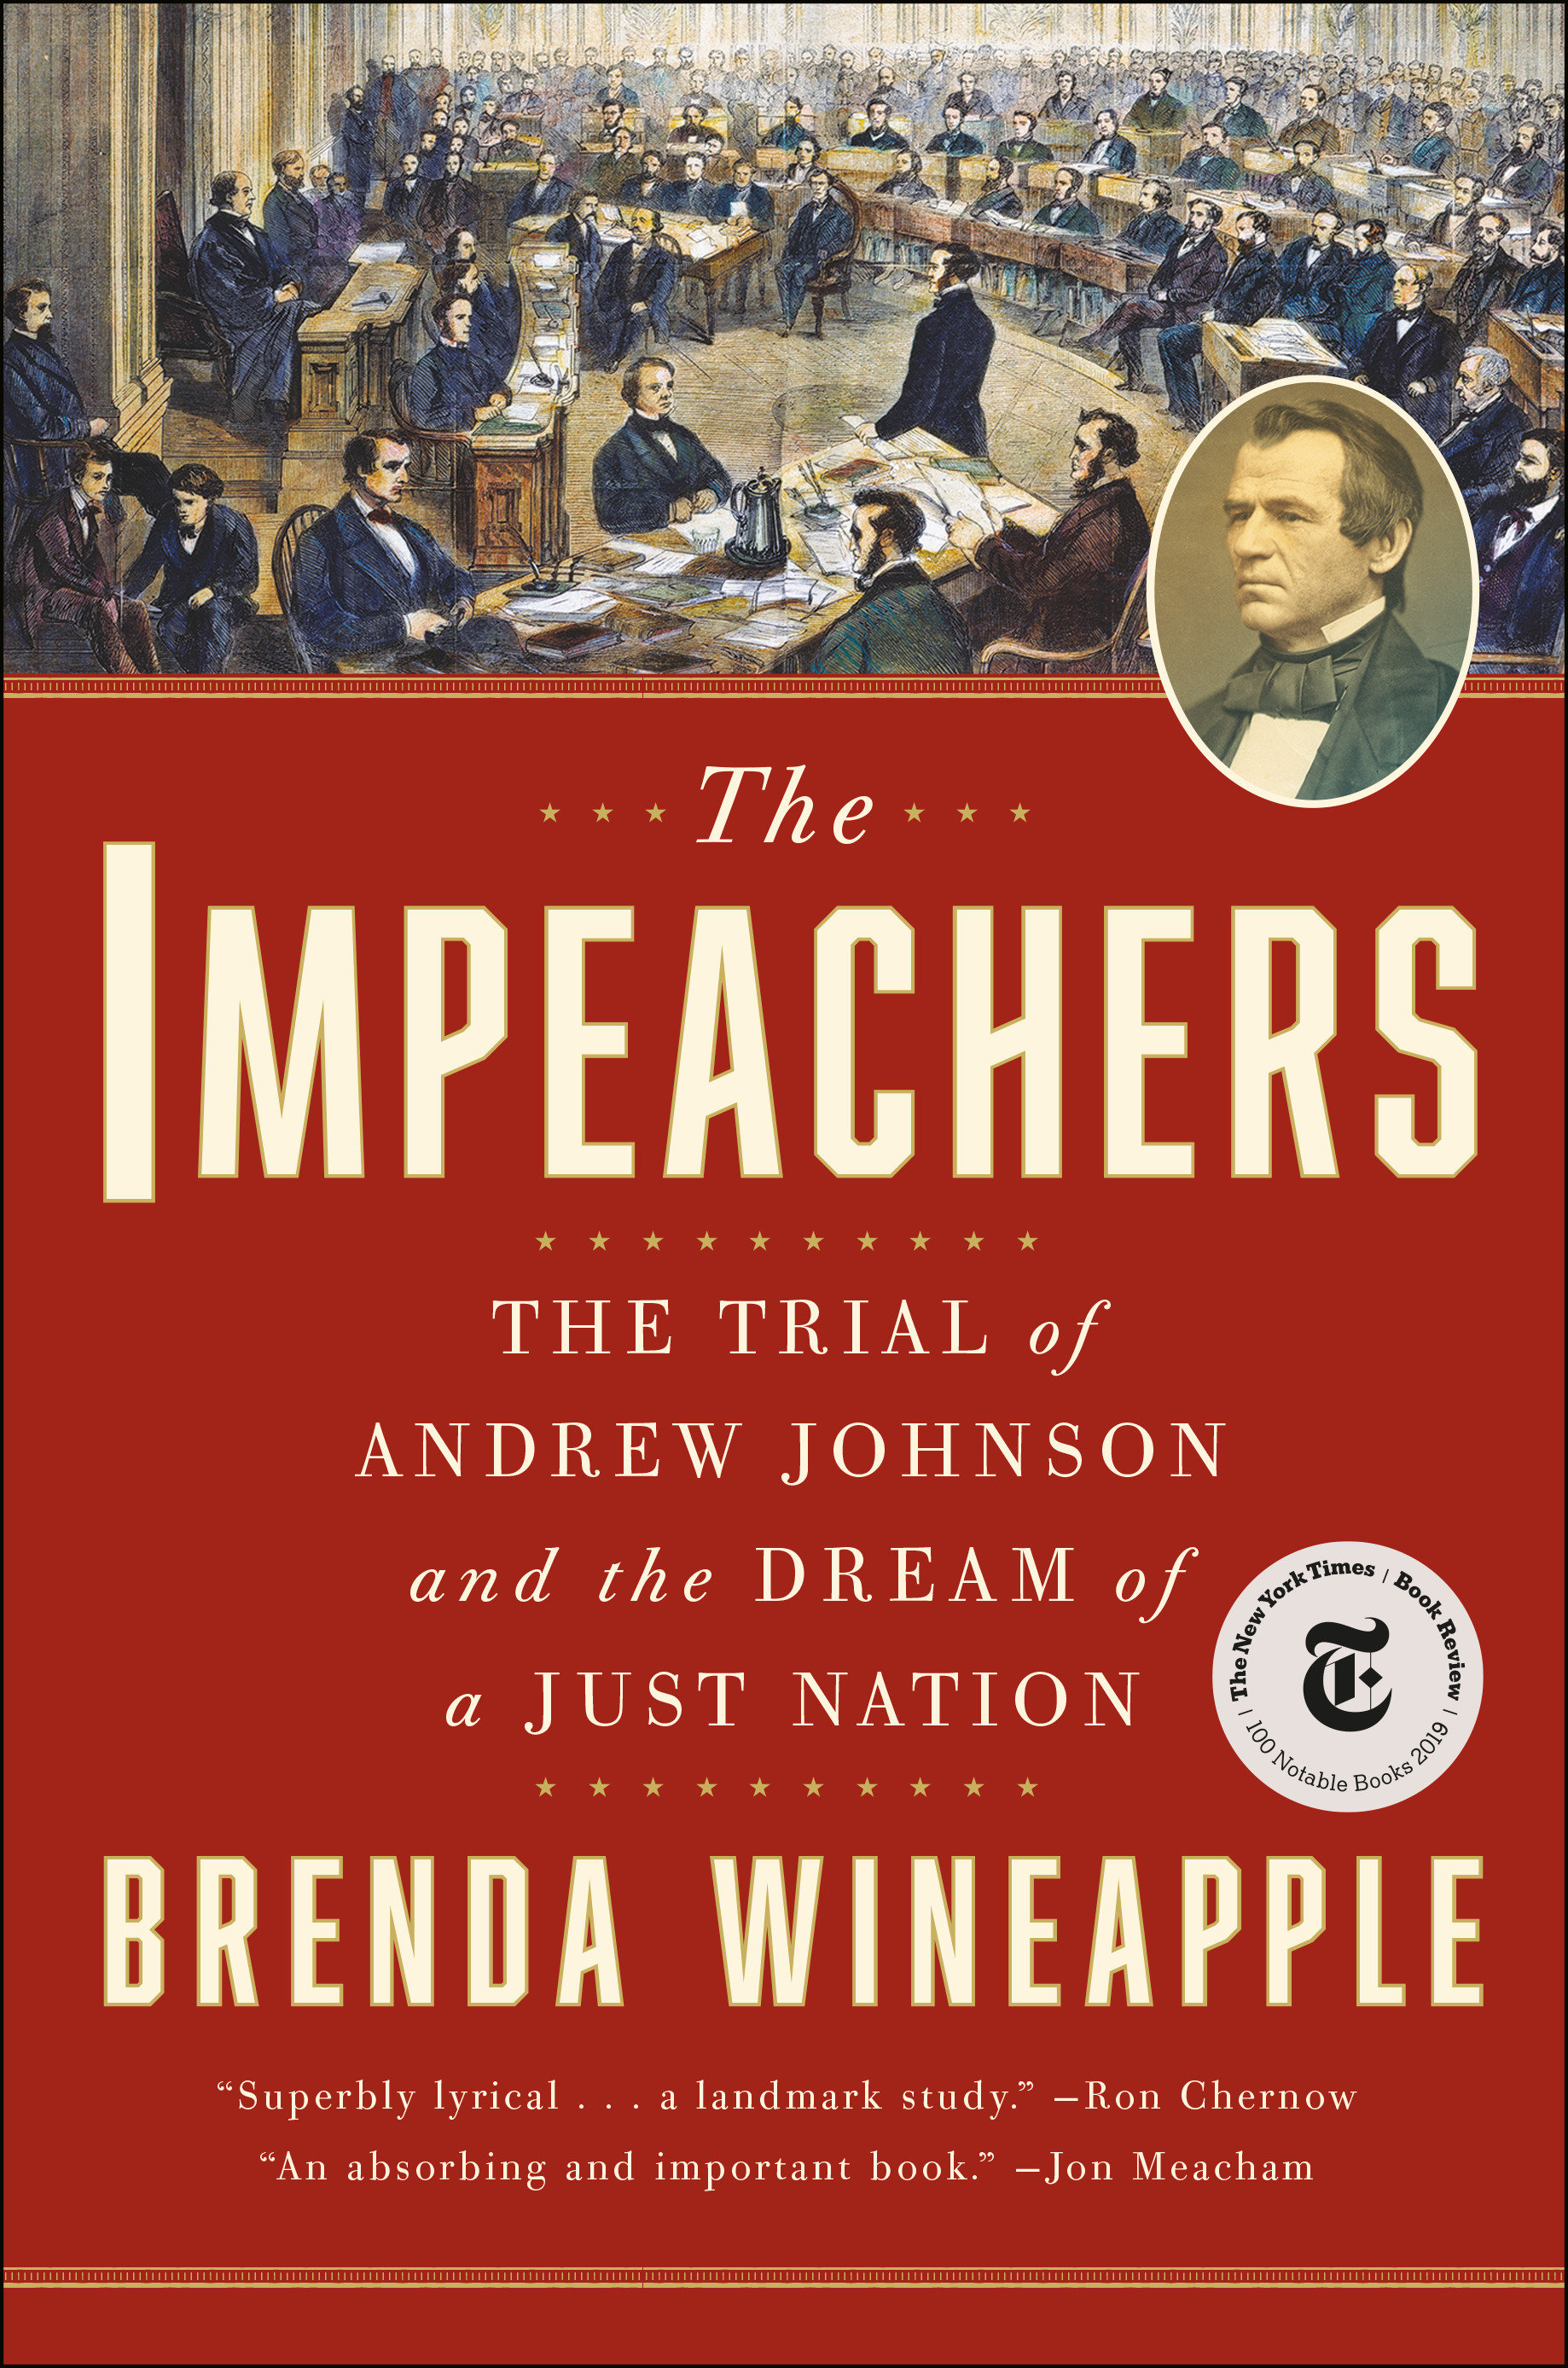 The Impeachers The Trial of Andrew Johnson and the Dream of a Just Nation